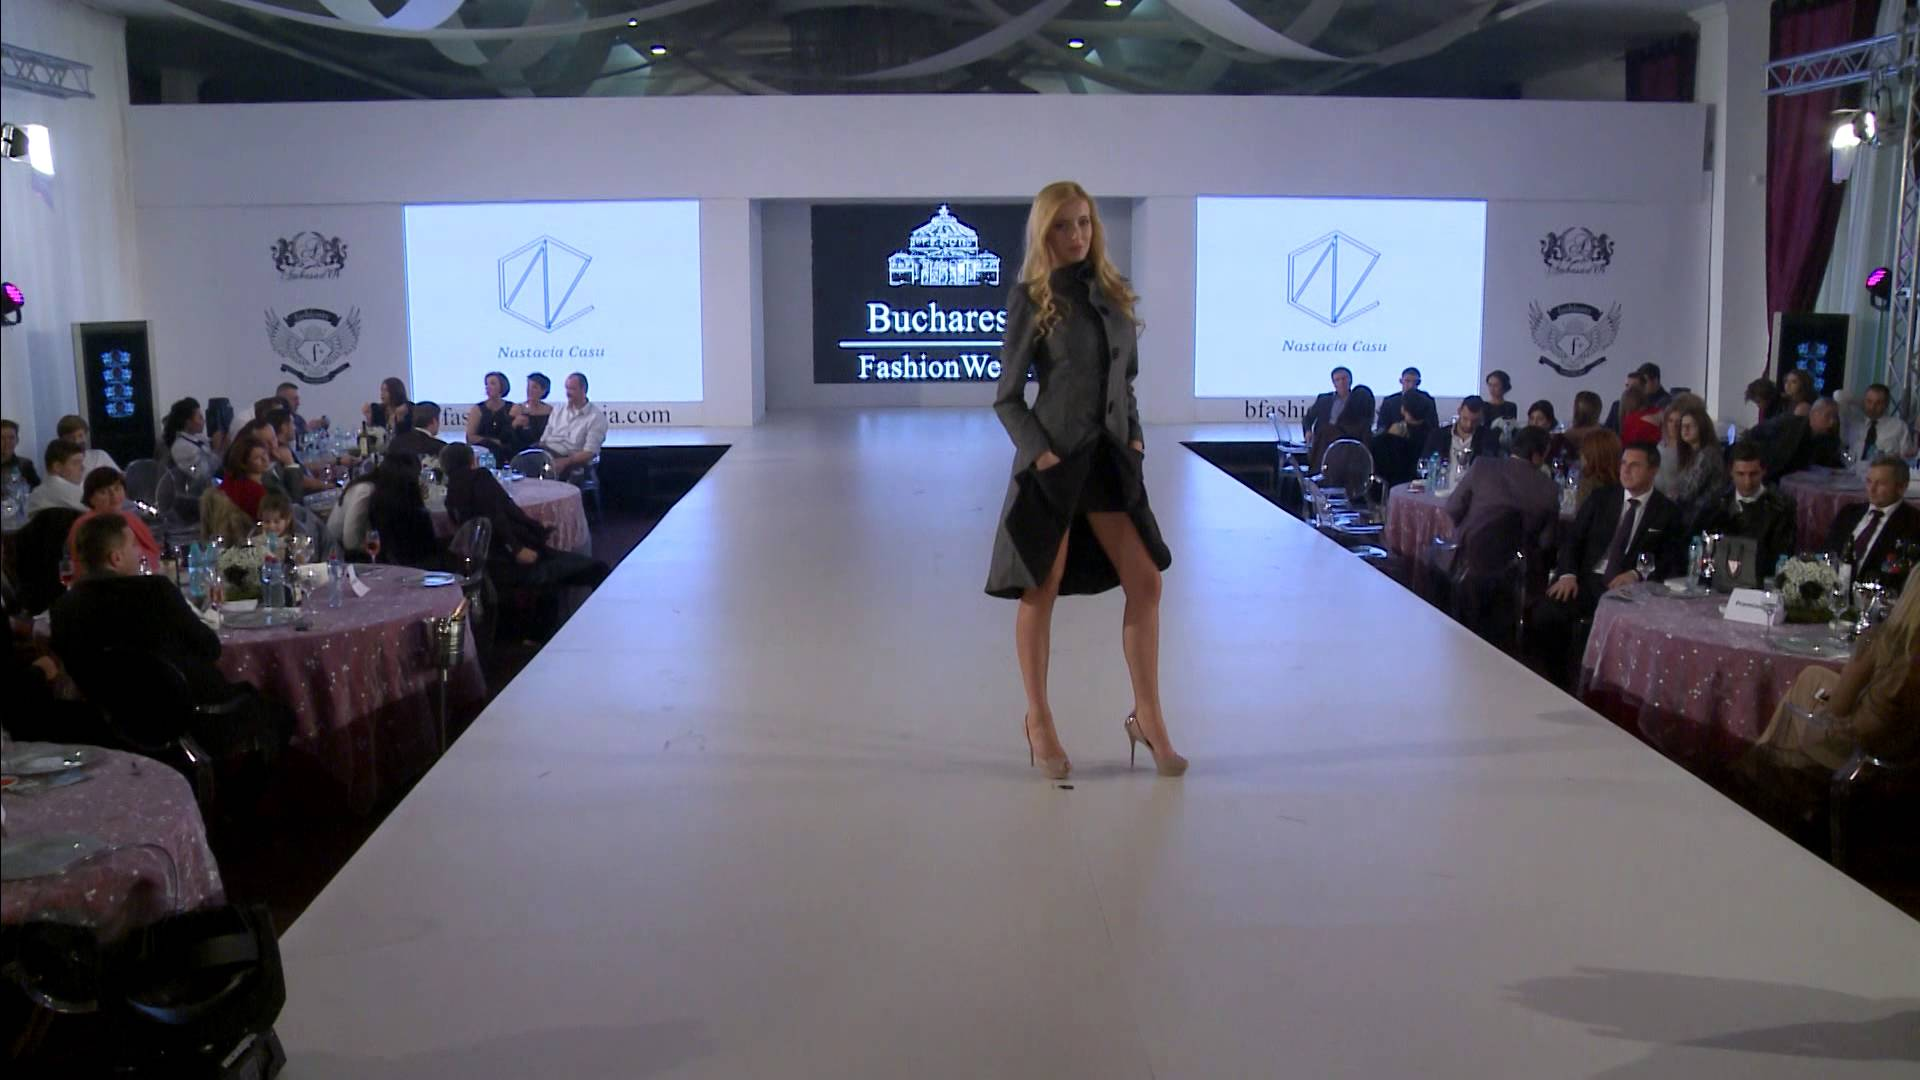 natascia casu Bucharest fashion week